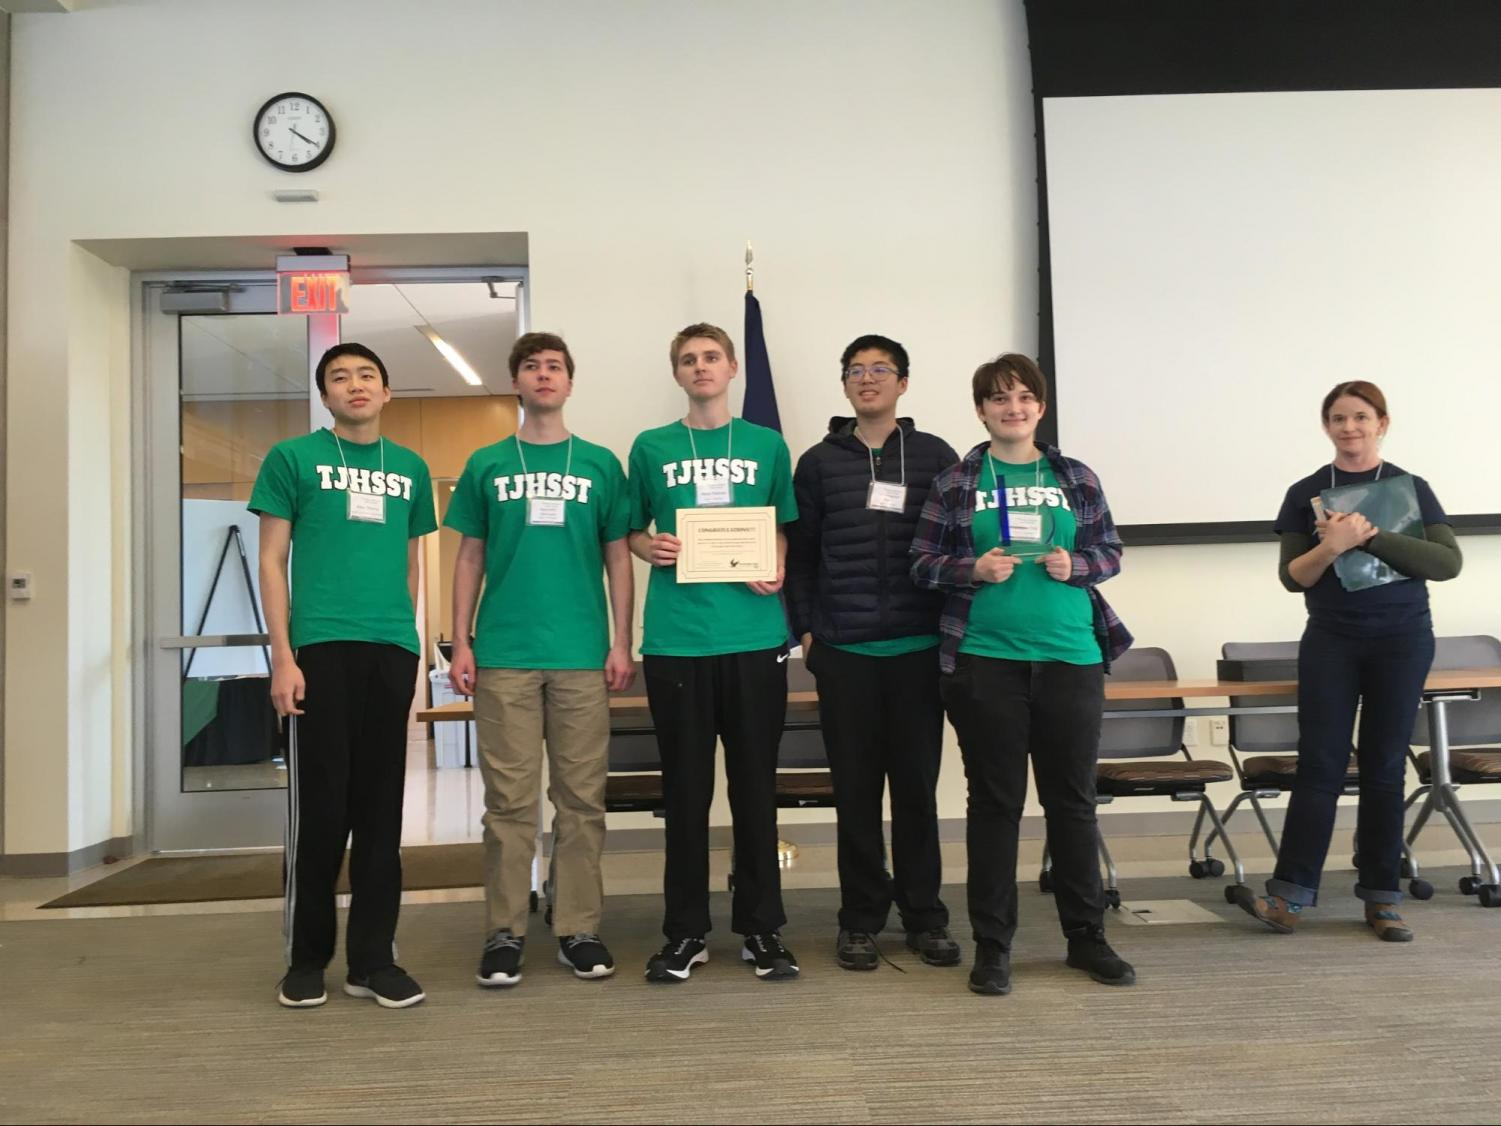 (From left to right: sophomore Alex Zhang, junior Kenny Johnson, senior Mark Putman, sophomore Chris Kan, senior MJ Old) Jefferson's Ocean Bowl A Team stands with their certificate and trophy for the Chesapeake Bay Bowl, a first for the club in five years.